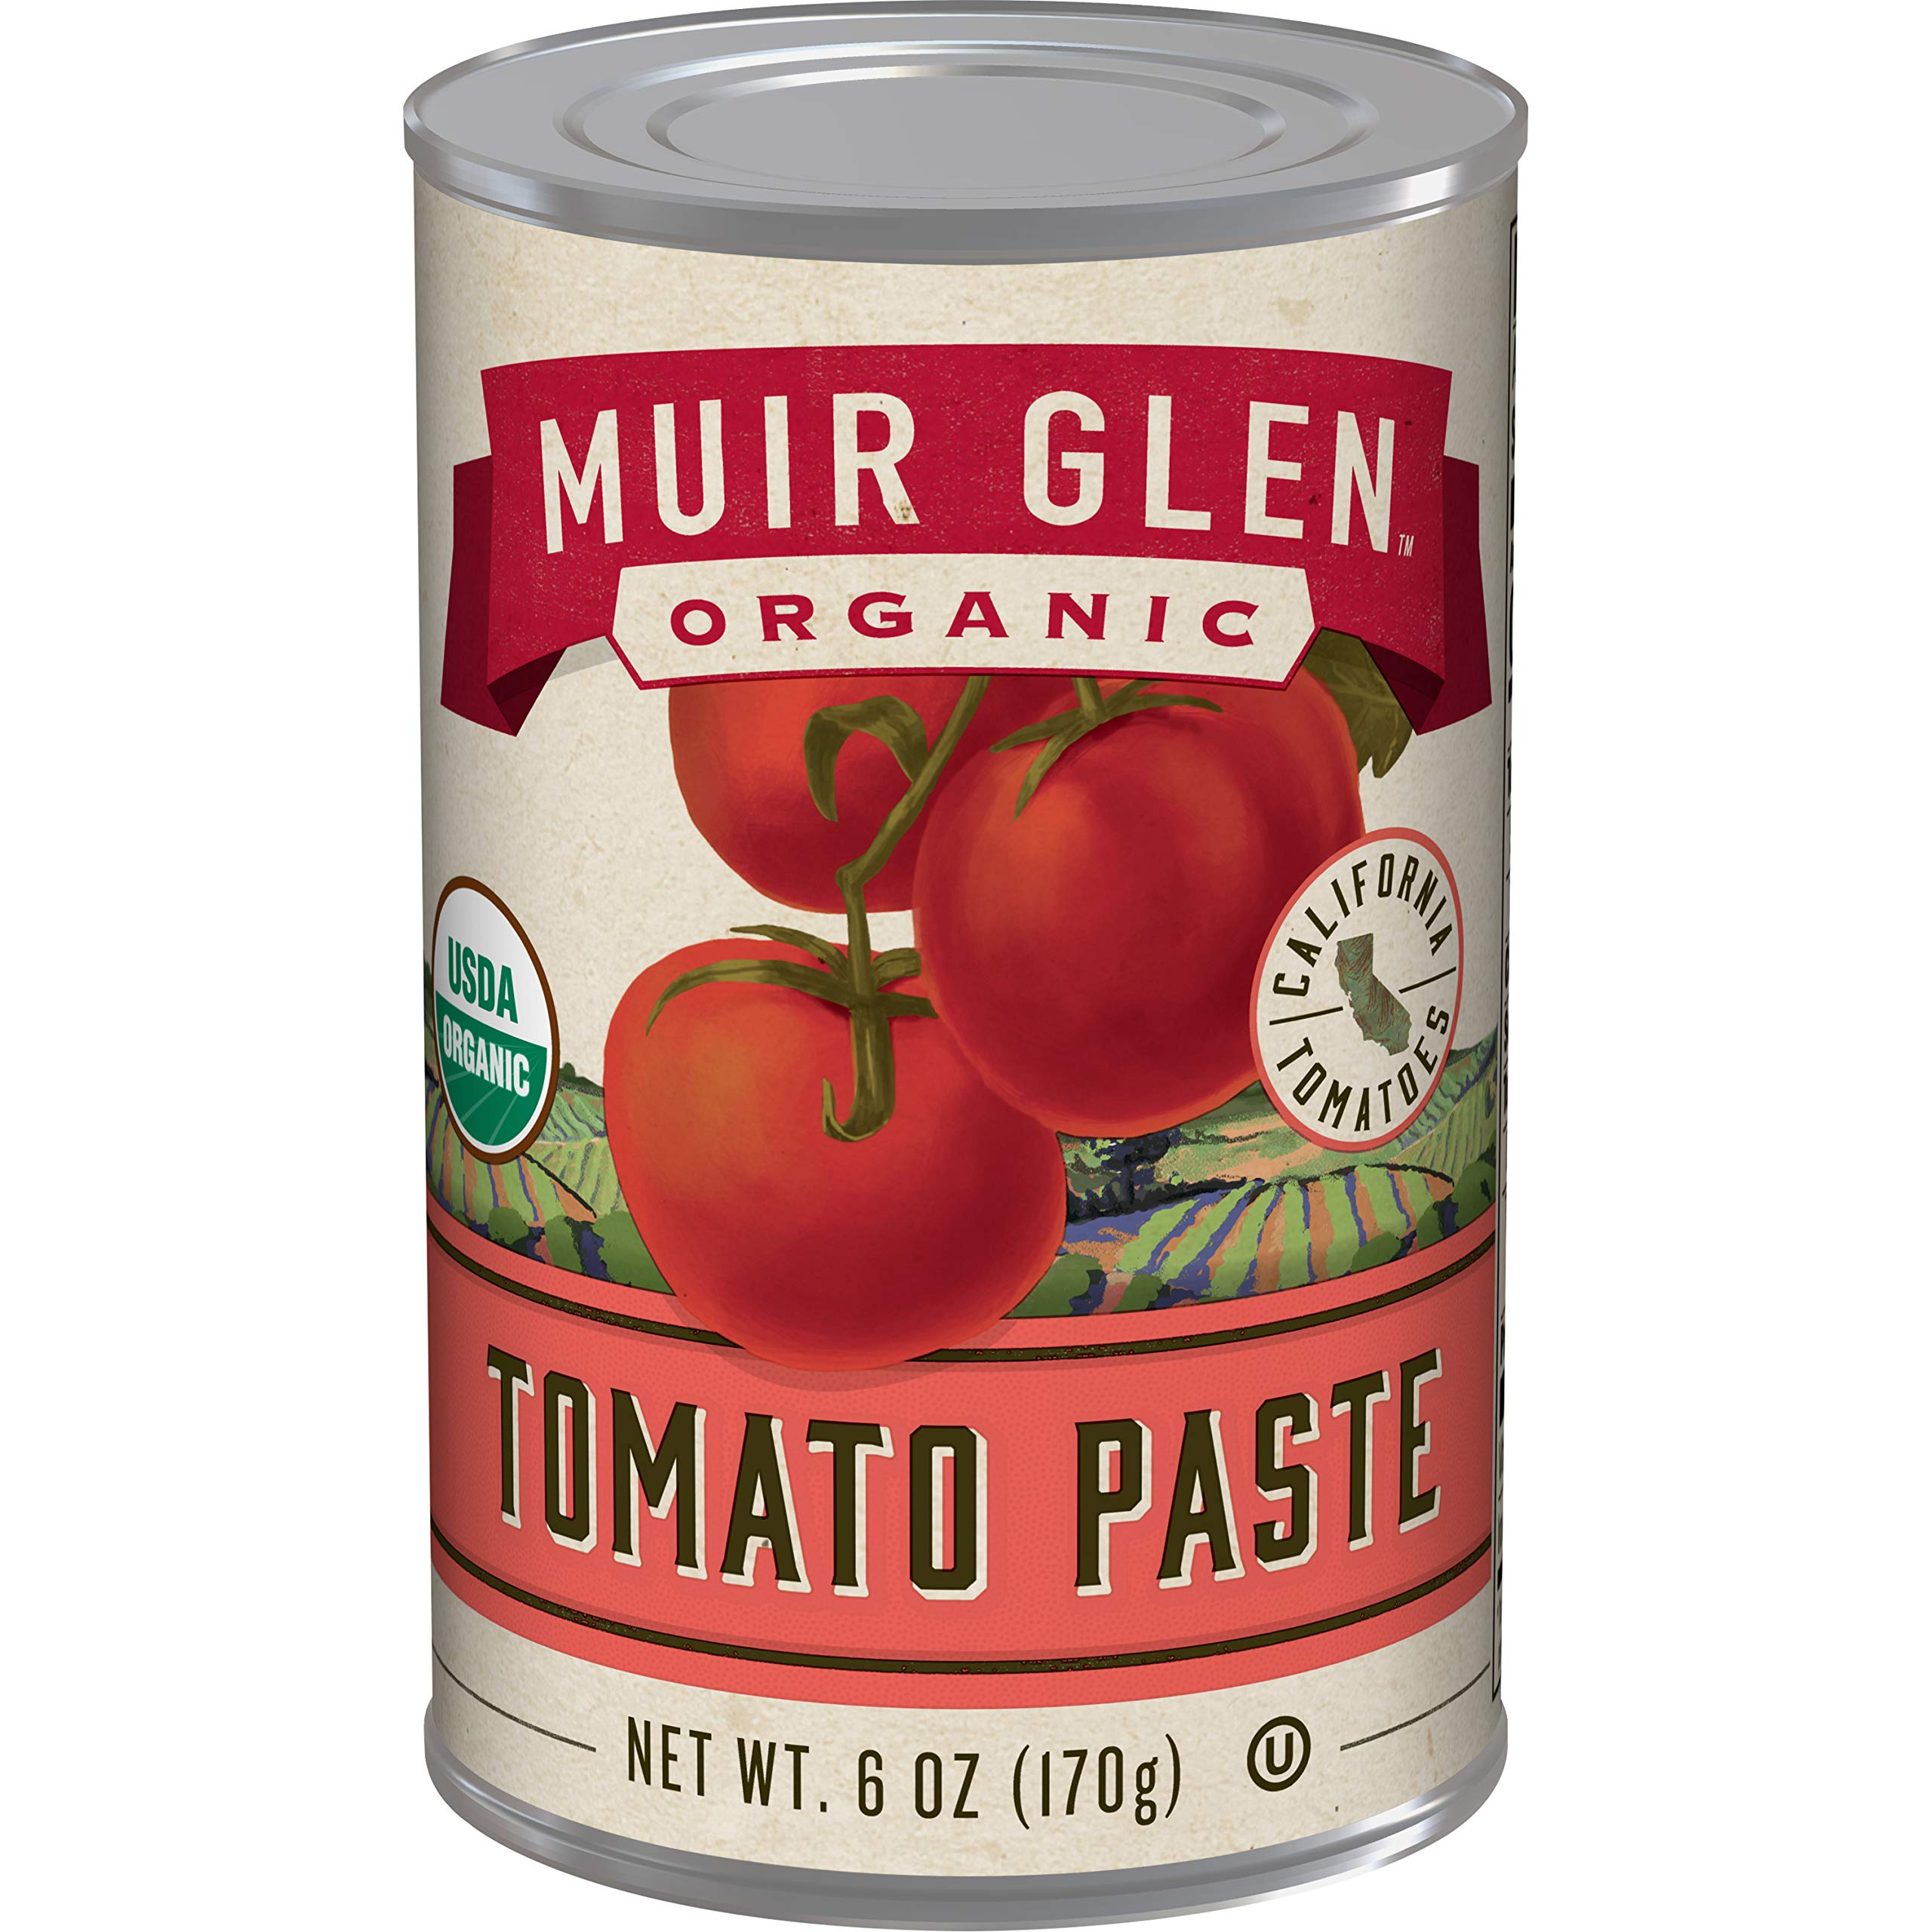 Muir Glen Organic Tomato Paste, No Sugar Added, 6 Ounce Can (Pack of 24) by Muir Glen